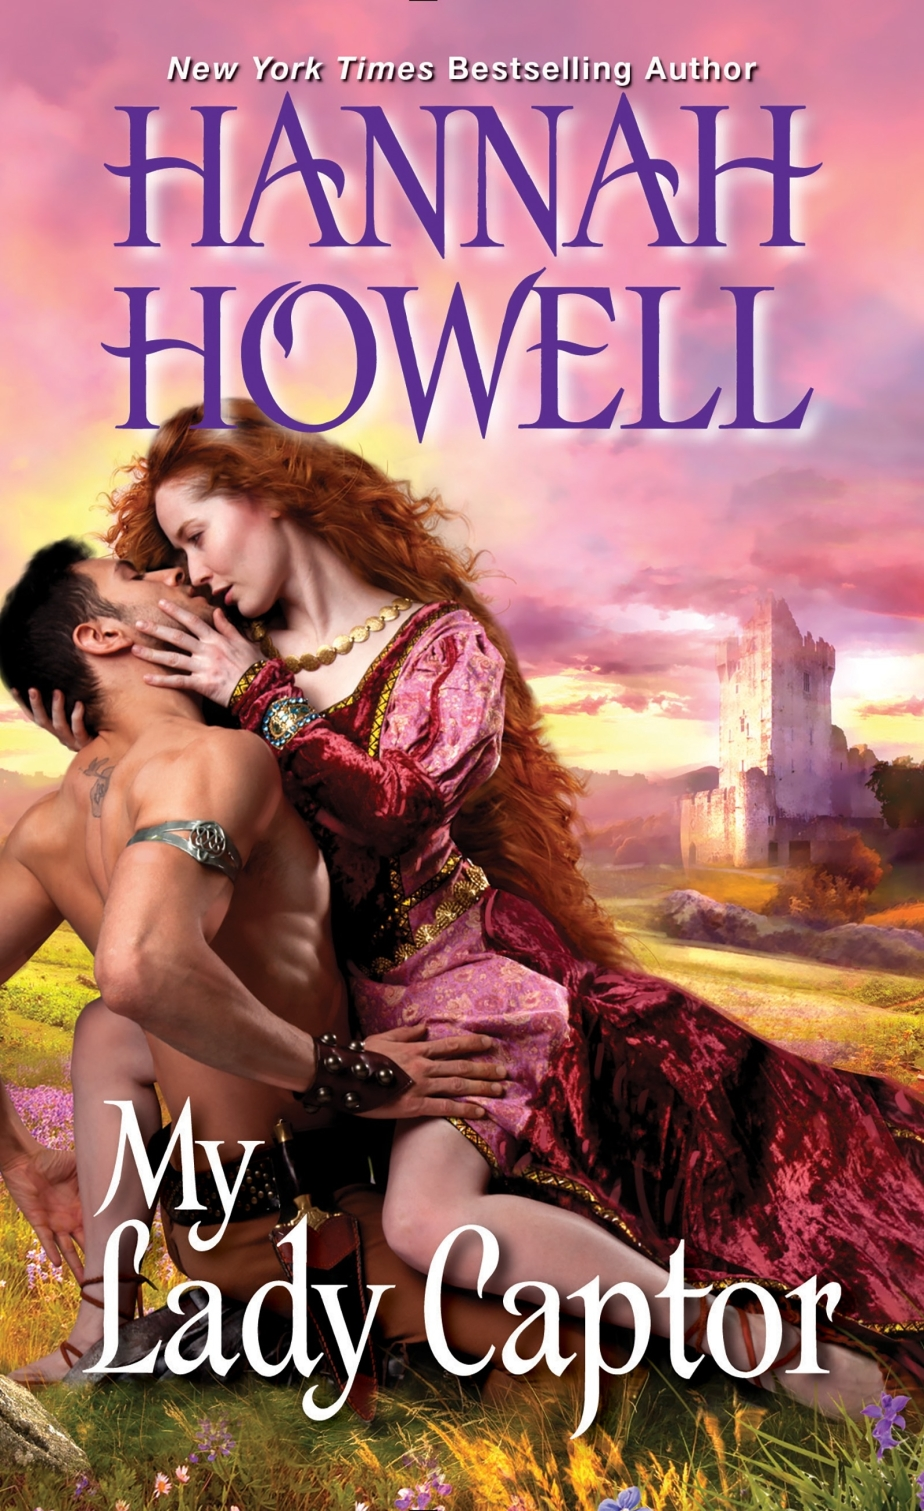 Enthralling Read ~ My Lady Captor by HannahHowell